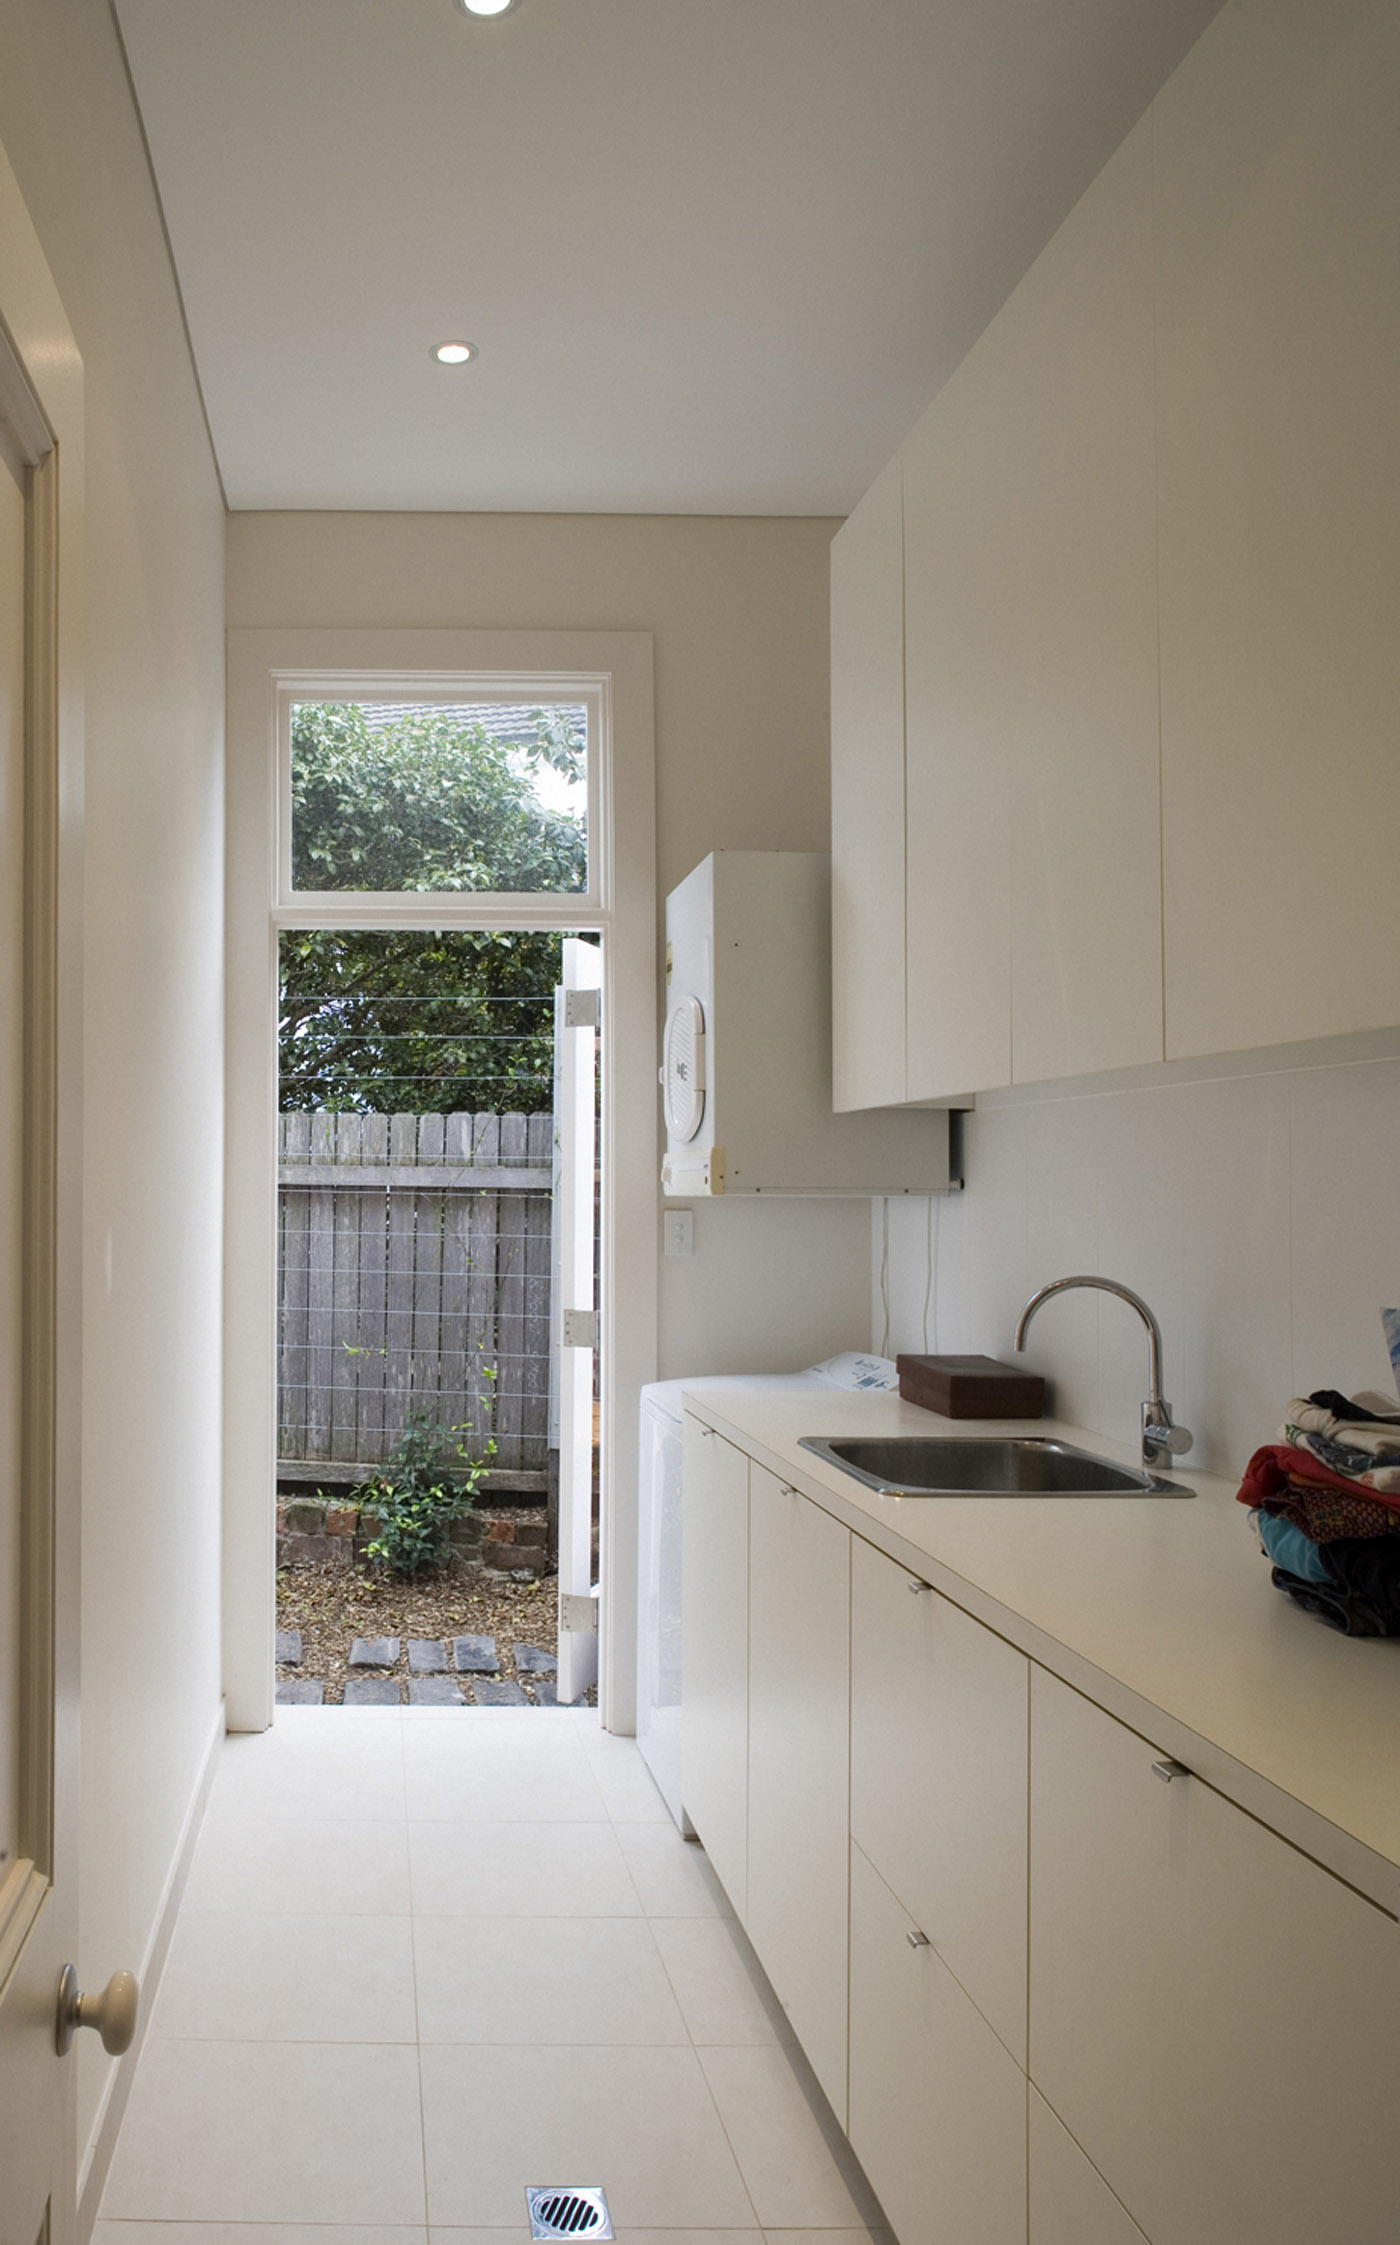 Cooper House by Sydney award winning residential architecture office Sam Crawford Architects. White melamine joinery gives a sense of lightness and brightens narrow laundry space.